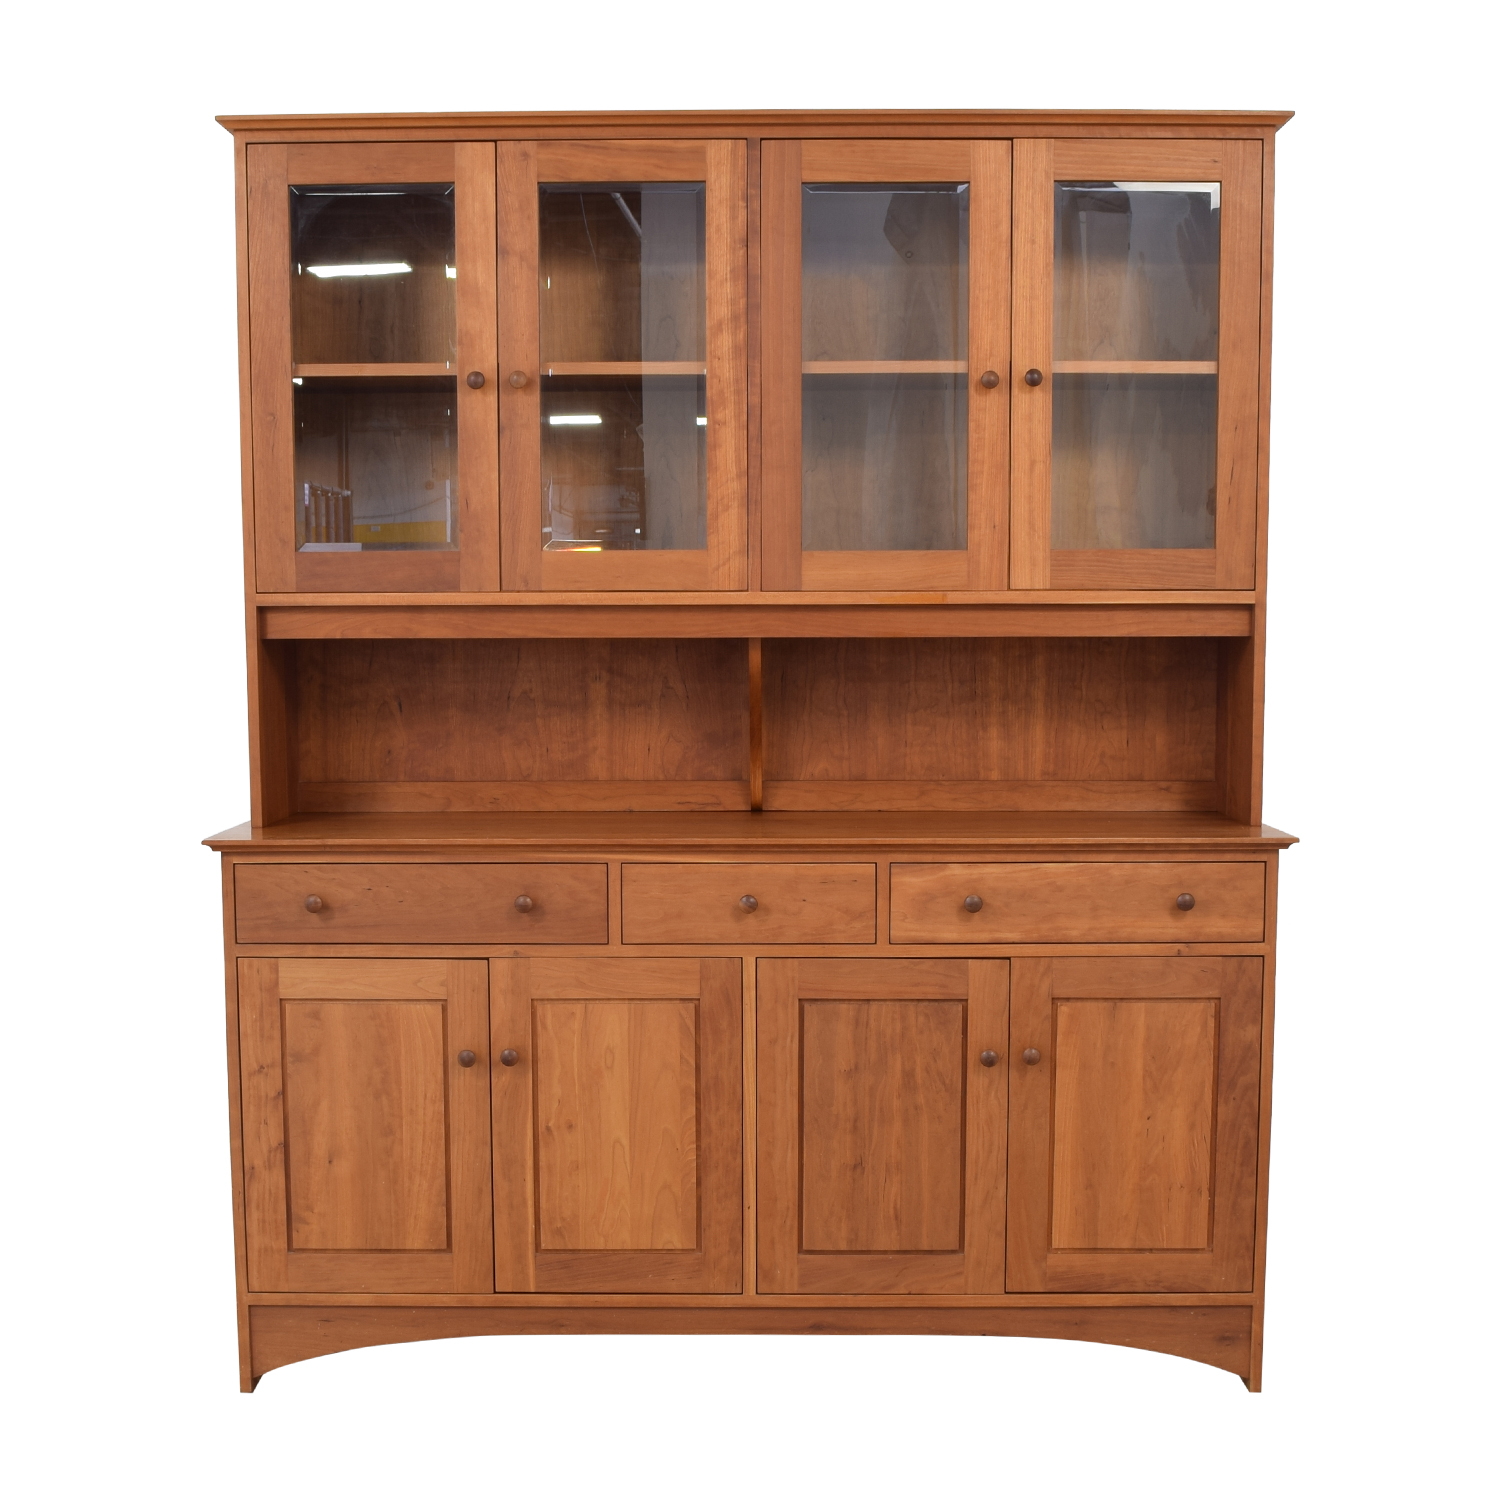 Thorn & Company Furniture Thorn & Company Hutch nj